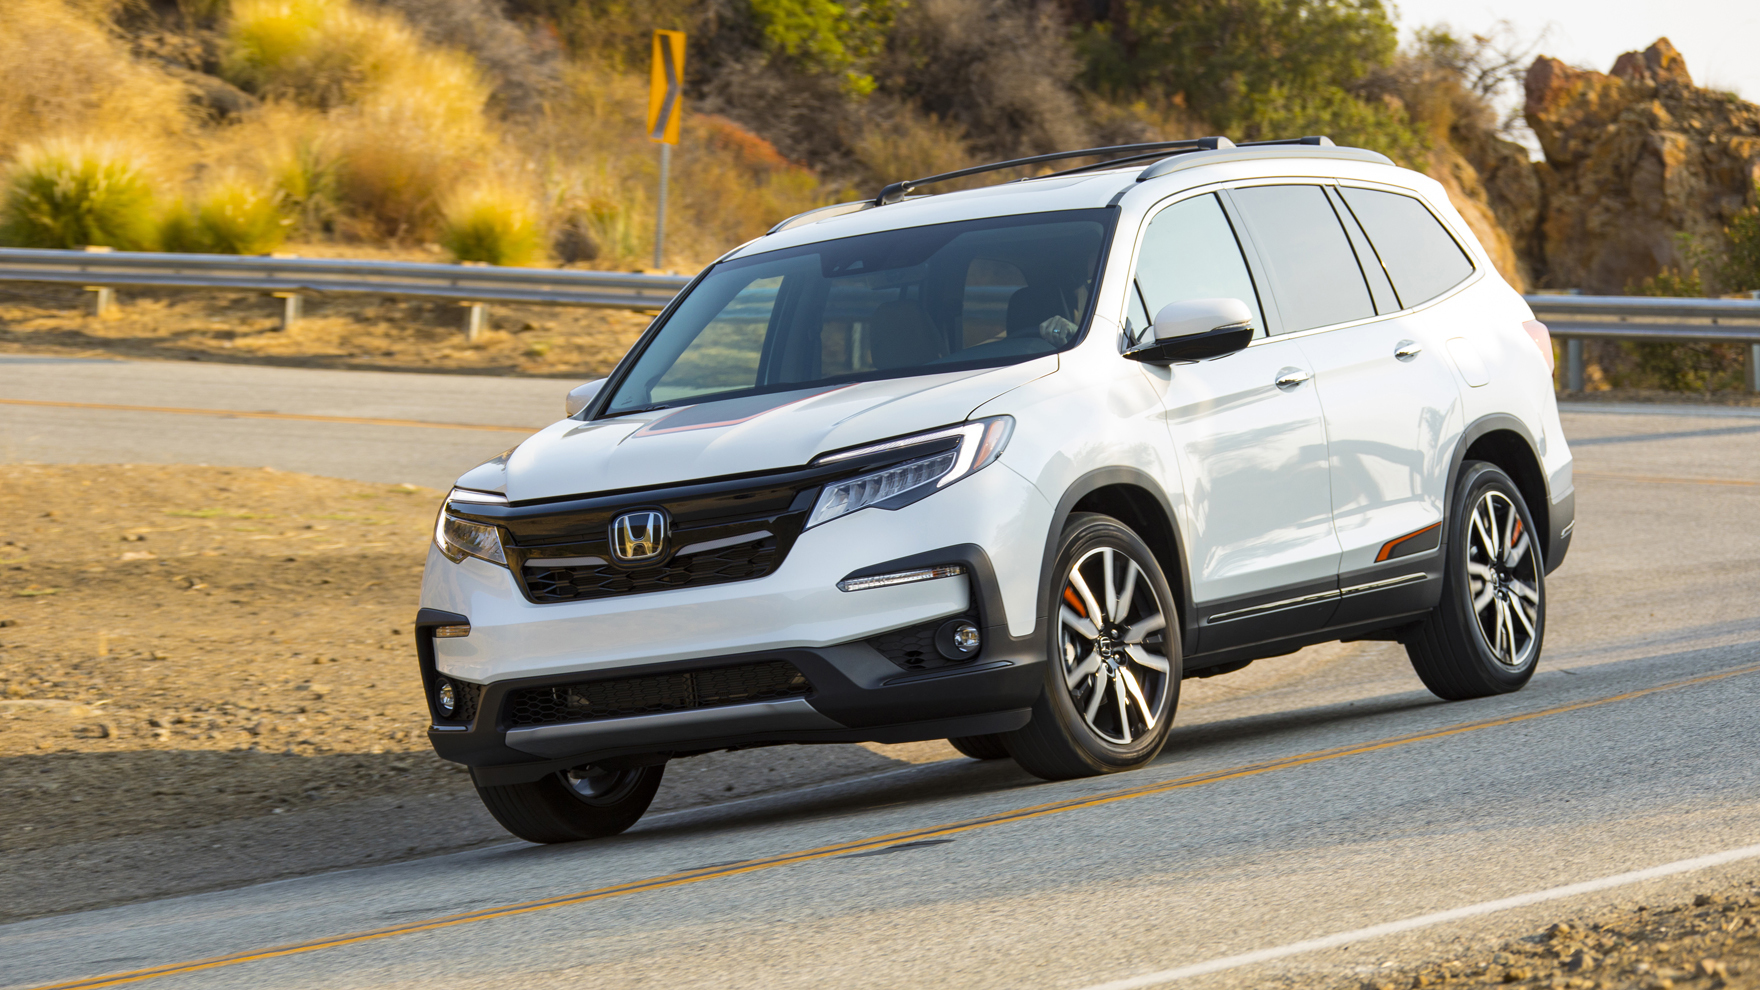 Honda Pilot Models >> 2019 Honda Pilot Elite Review | Drivers' notes concerning ...